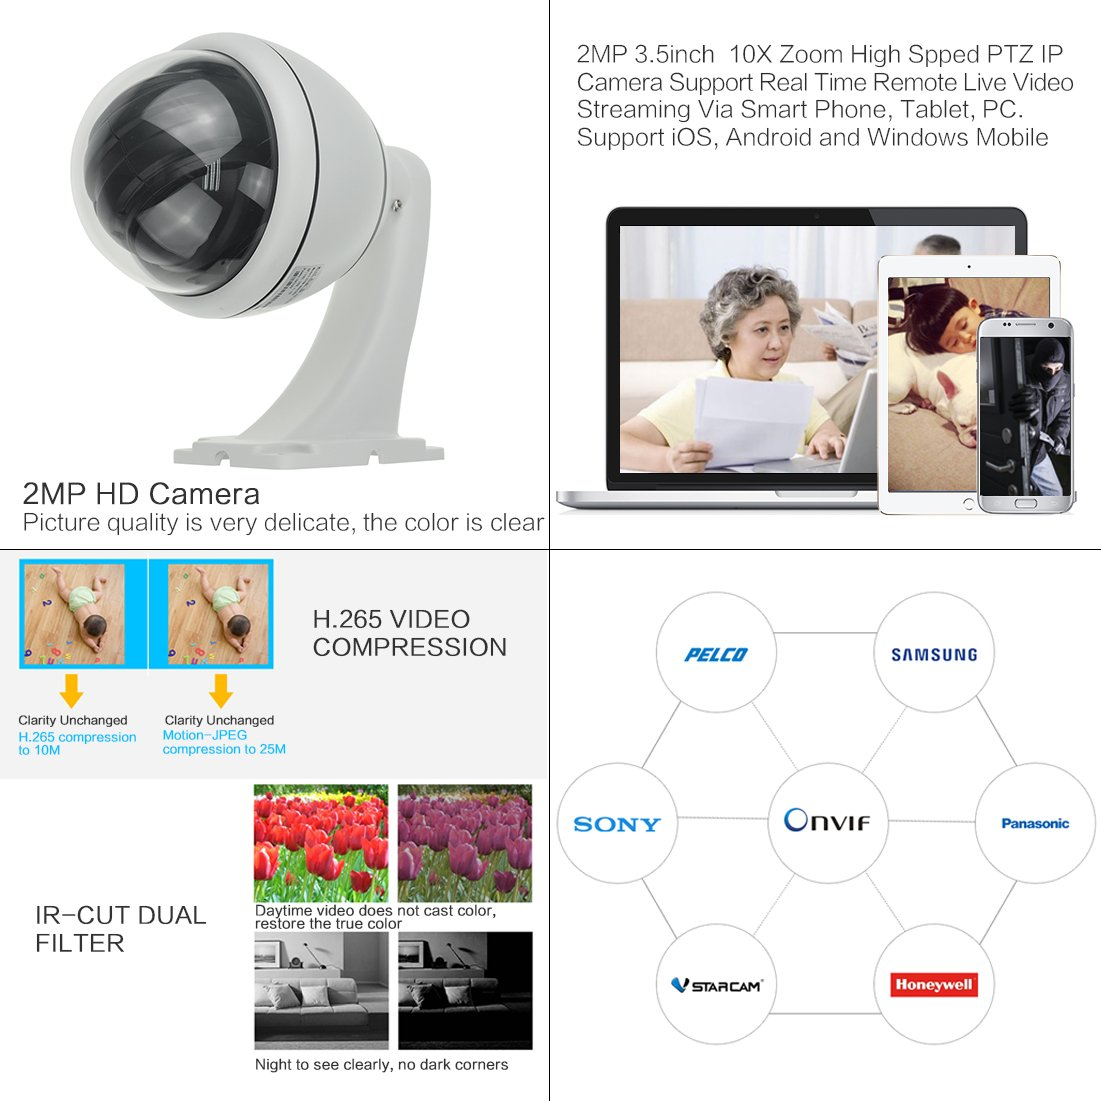 Ureru HD PTZ IP Camera Pan/Tilt/Zoom Security Camera (2.0 Megapixels 10X Zoom): Amazon.es: Electrónica